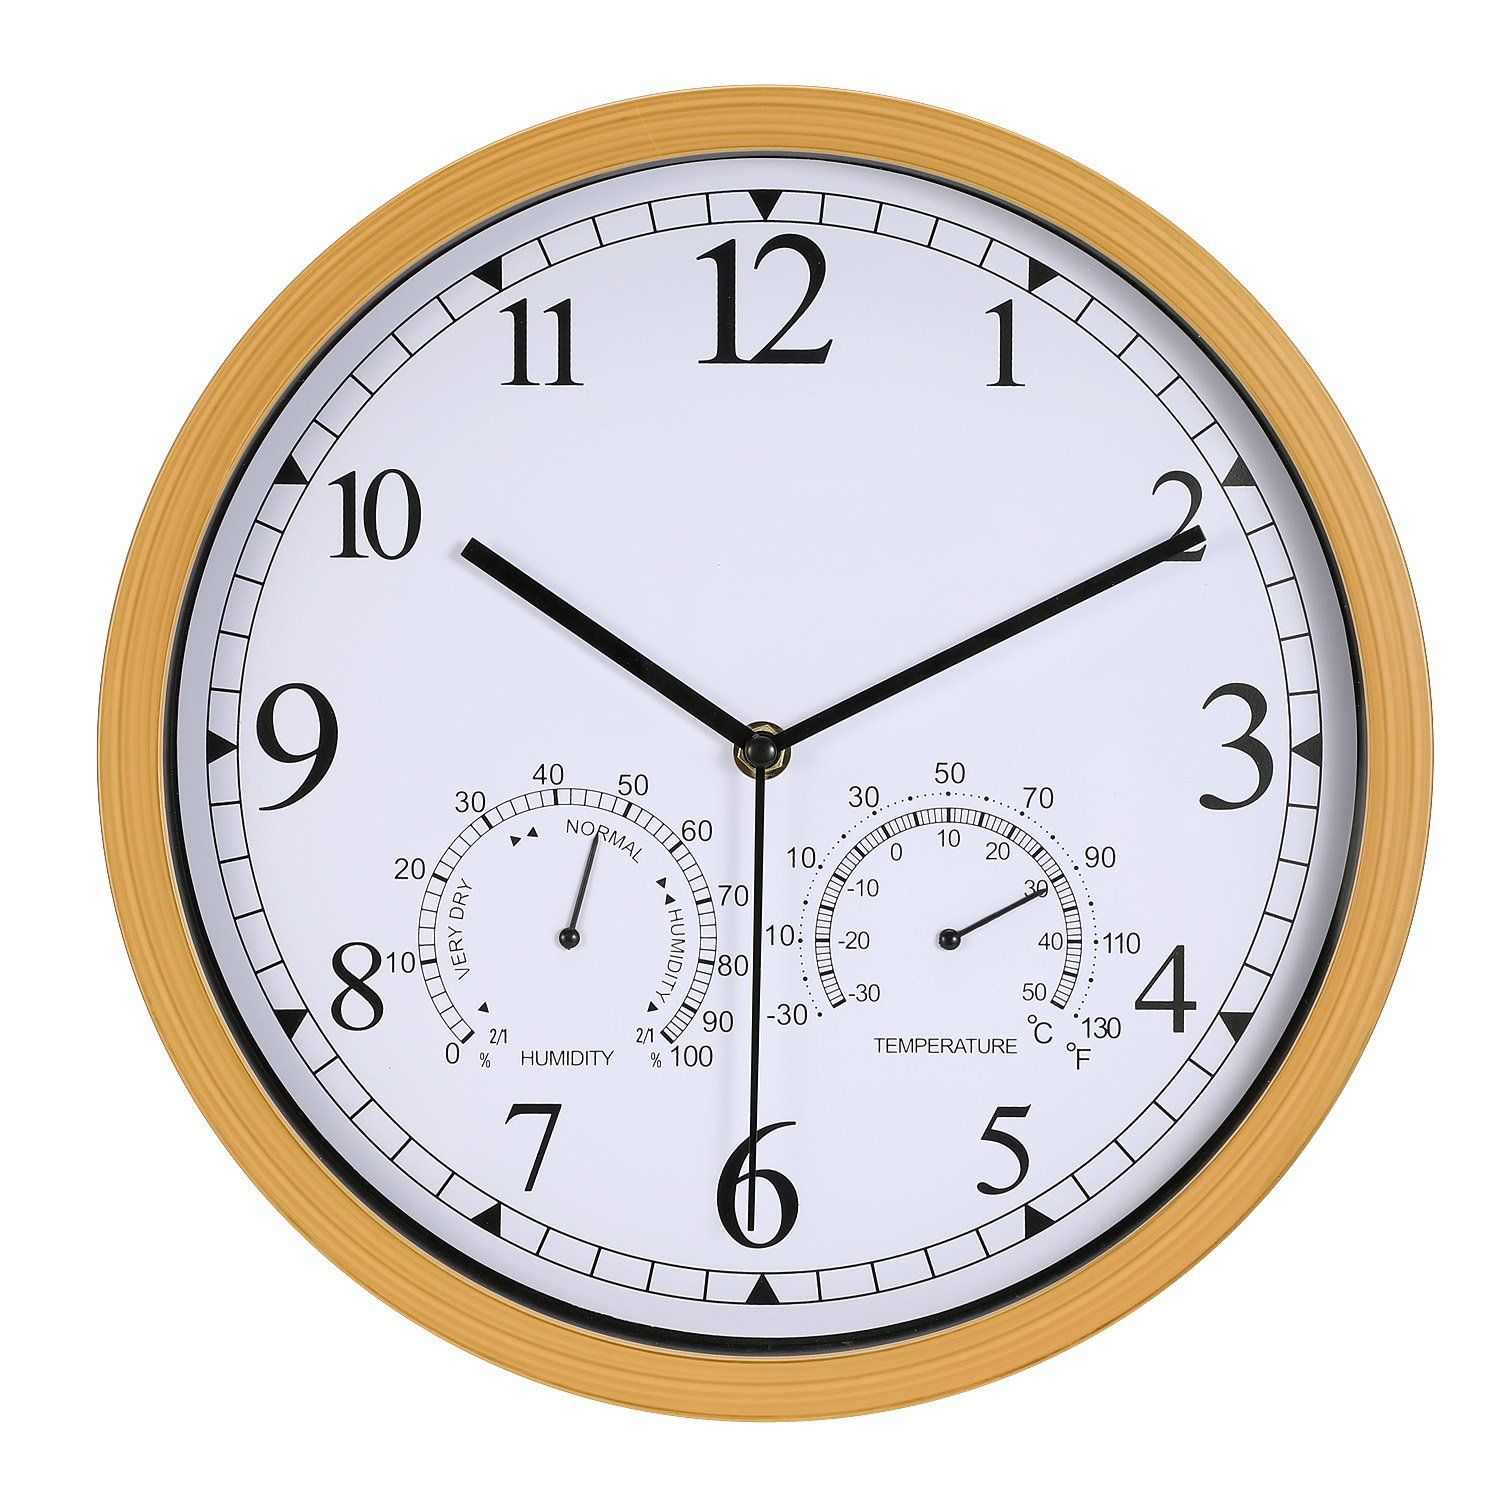 Genbaly 12 Inch Indoor Outdoor Modern Wall Clock With Temperature Amp Humidity Silent Non T Wall Clock Modern Living Room Drapes Wall Clock With Temperature